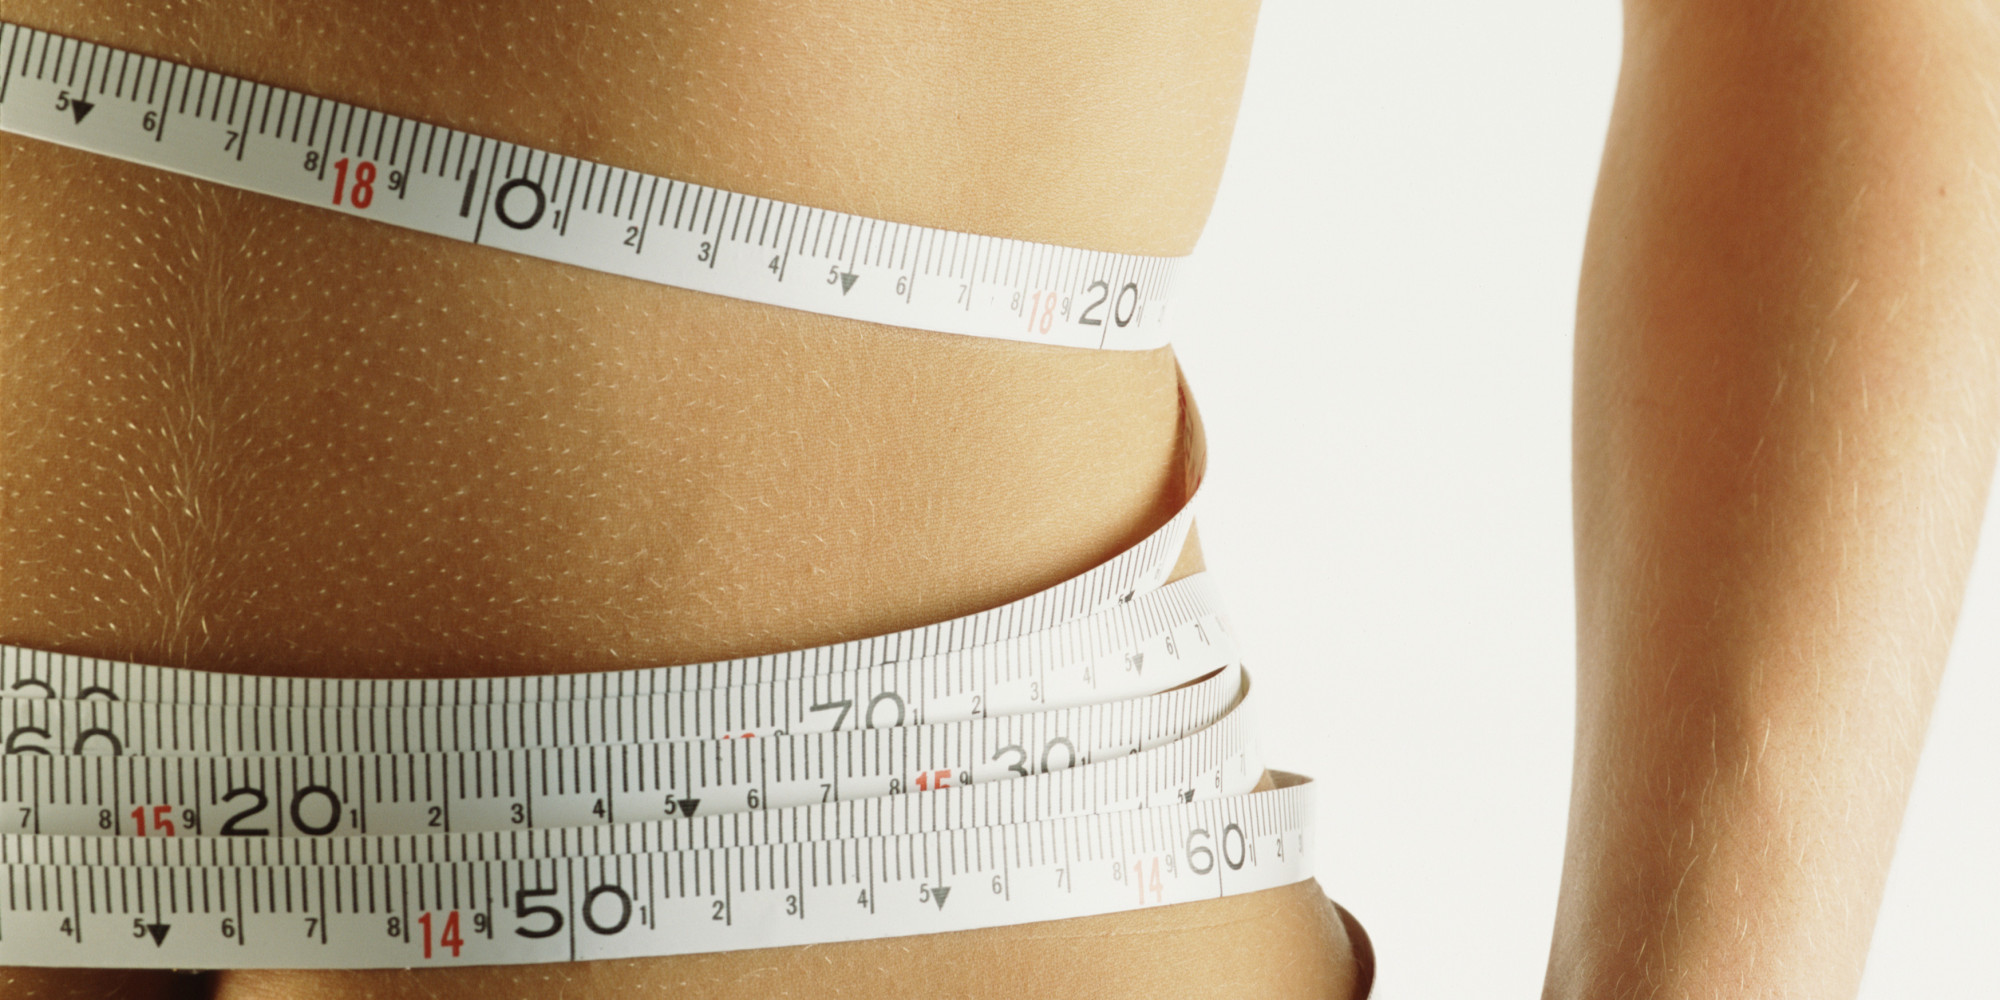 Media, Body Image, and Eating Disorders National